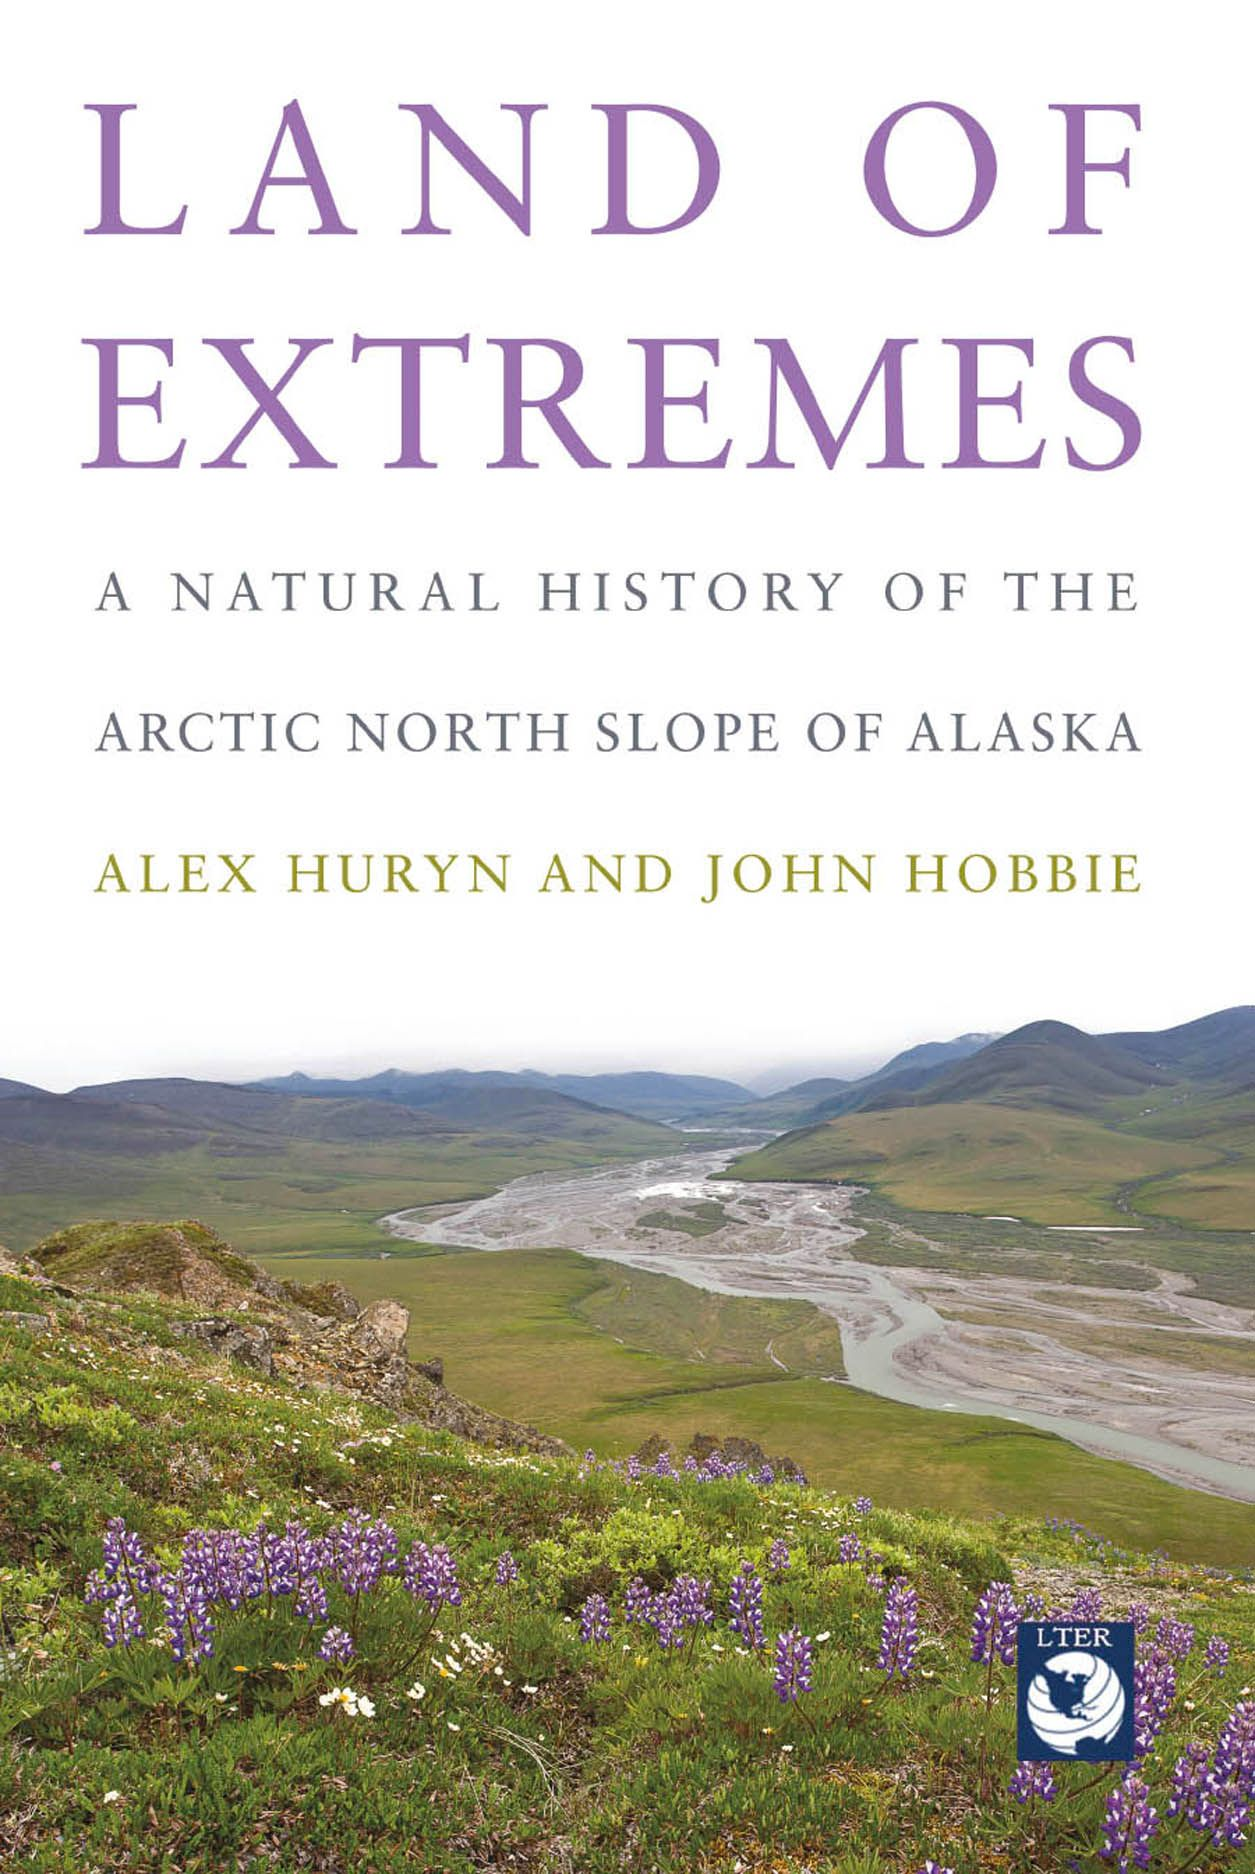 Land of Extremes: A Natural History of the Arctic North Slope of Alaska